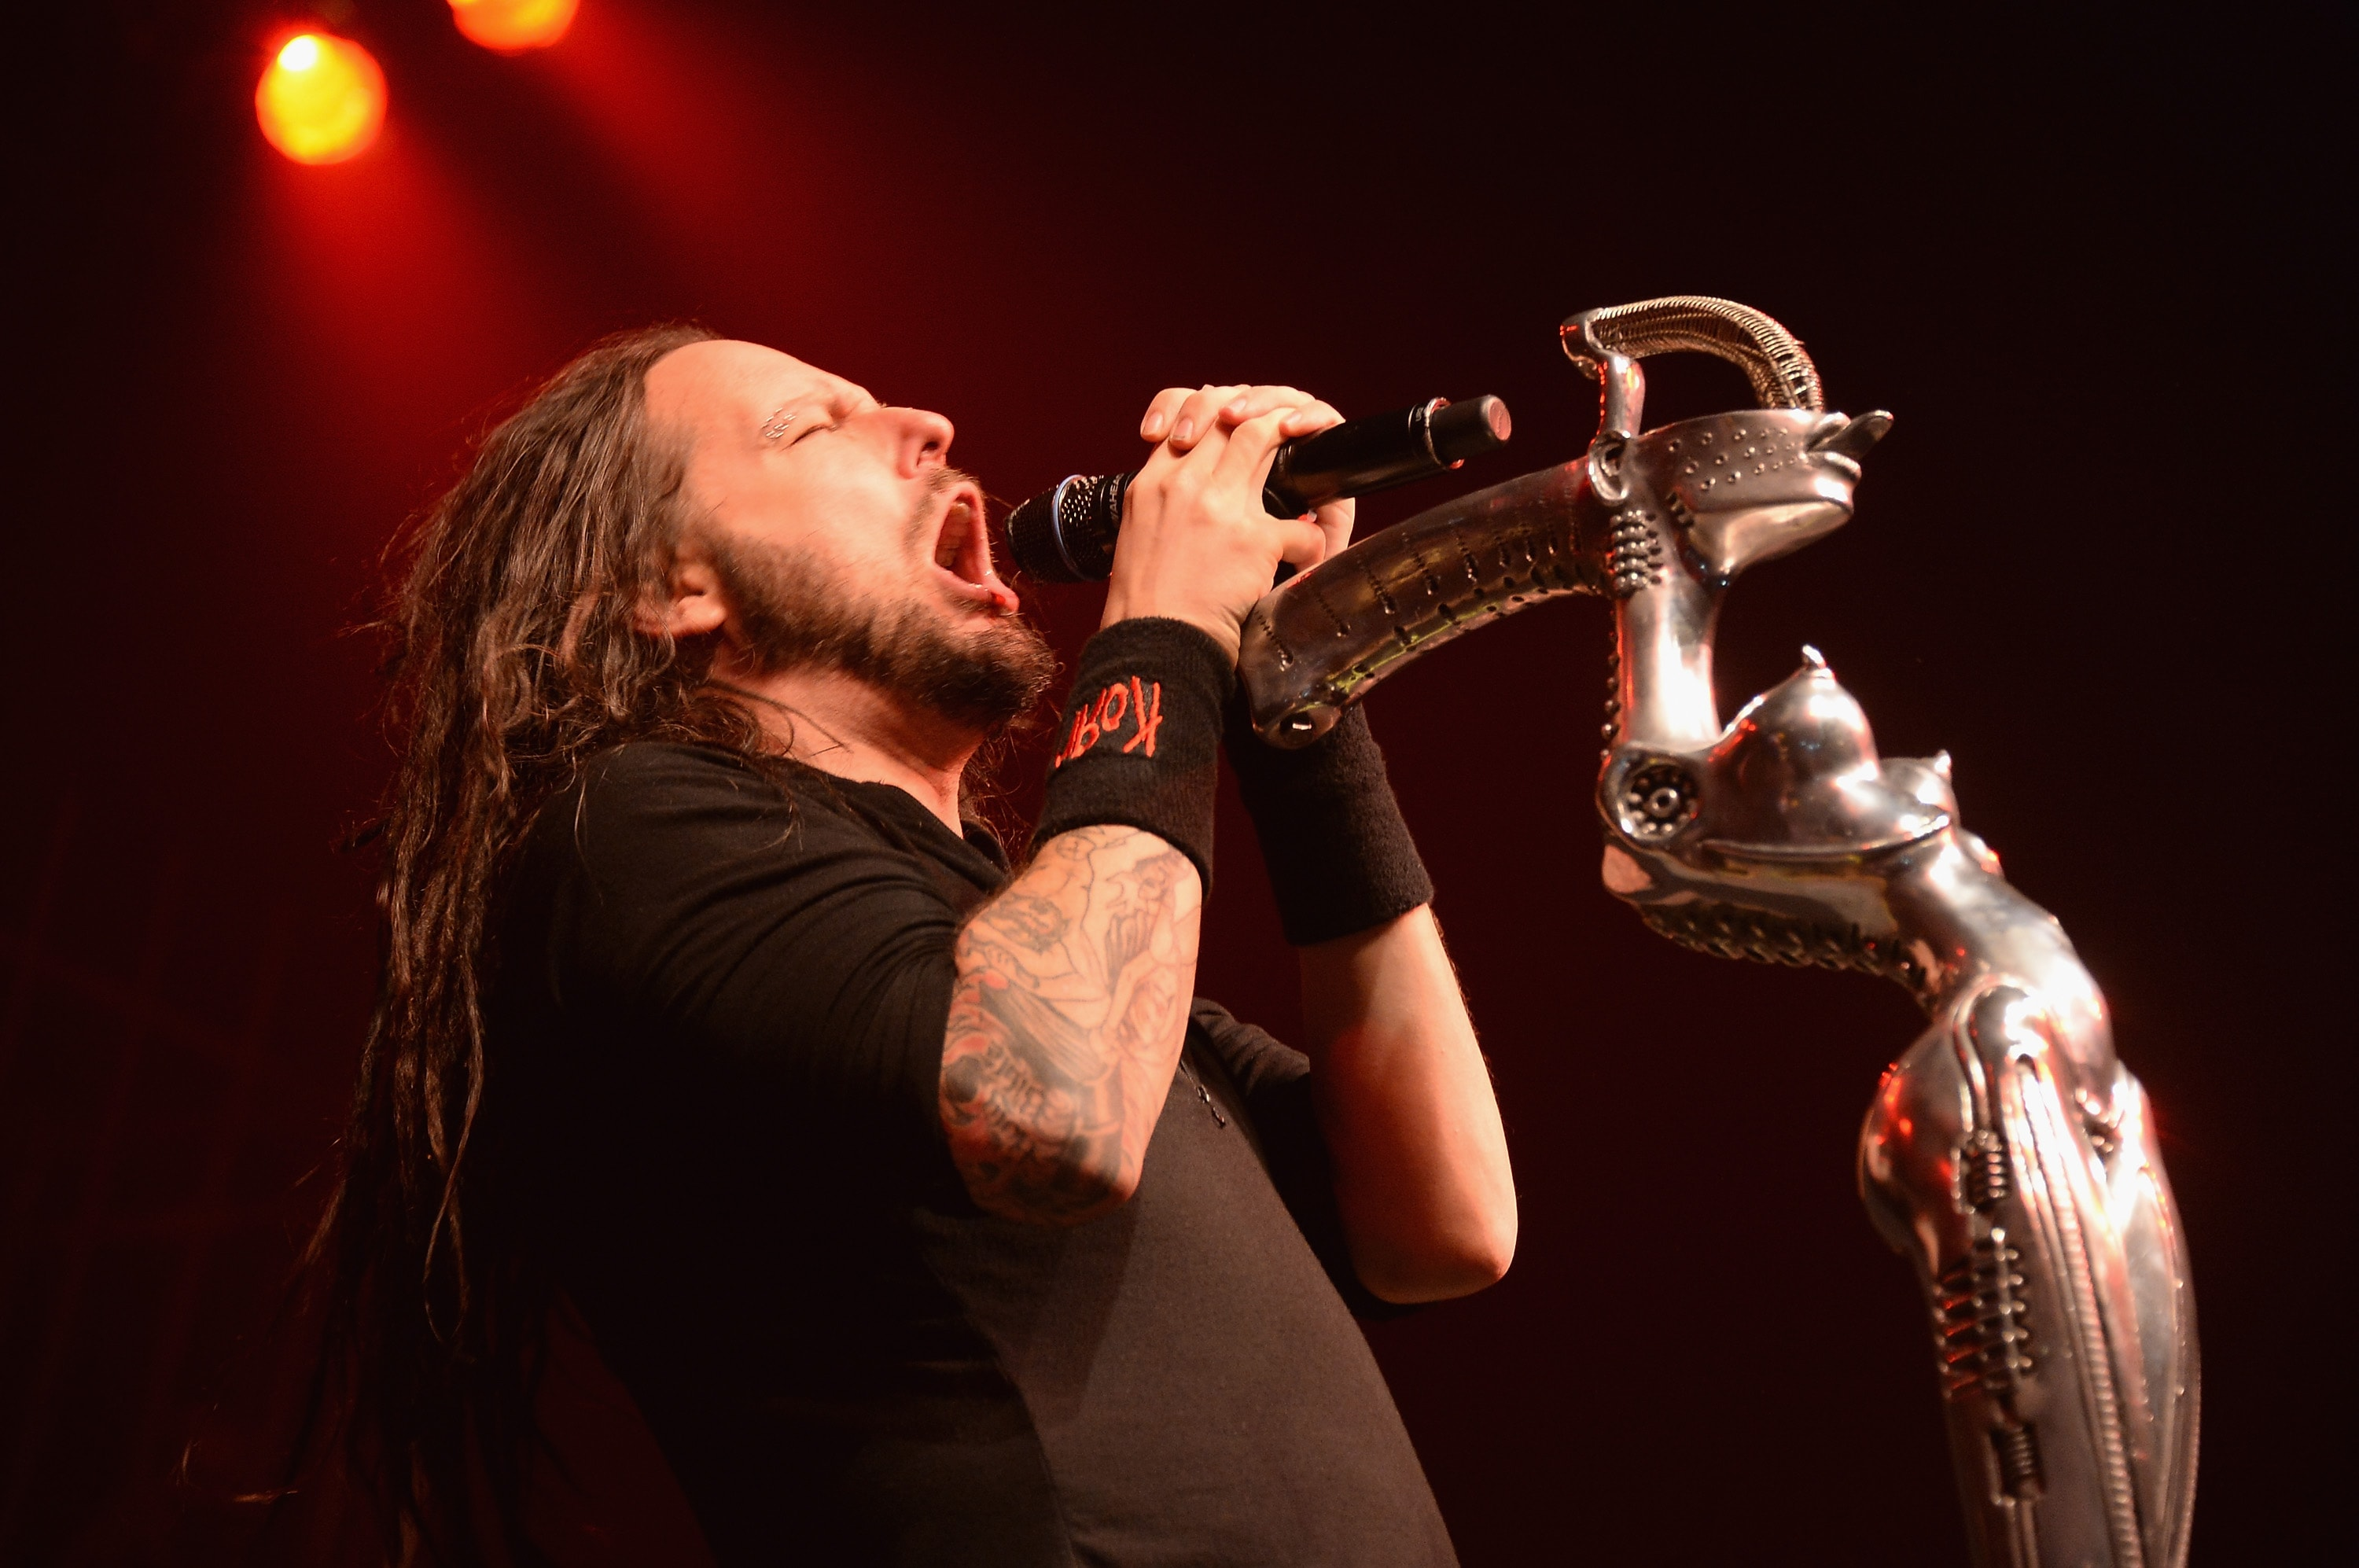 NEW YORK, NY - SEPTEMBER 27: Jonathan David of Korn performs at Roseland Ballroom on September 27, 2013 in New York City.